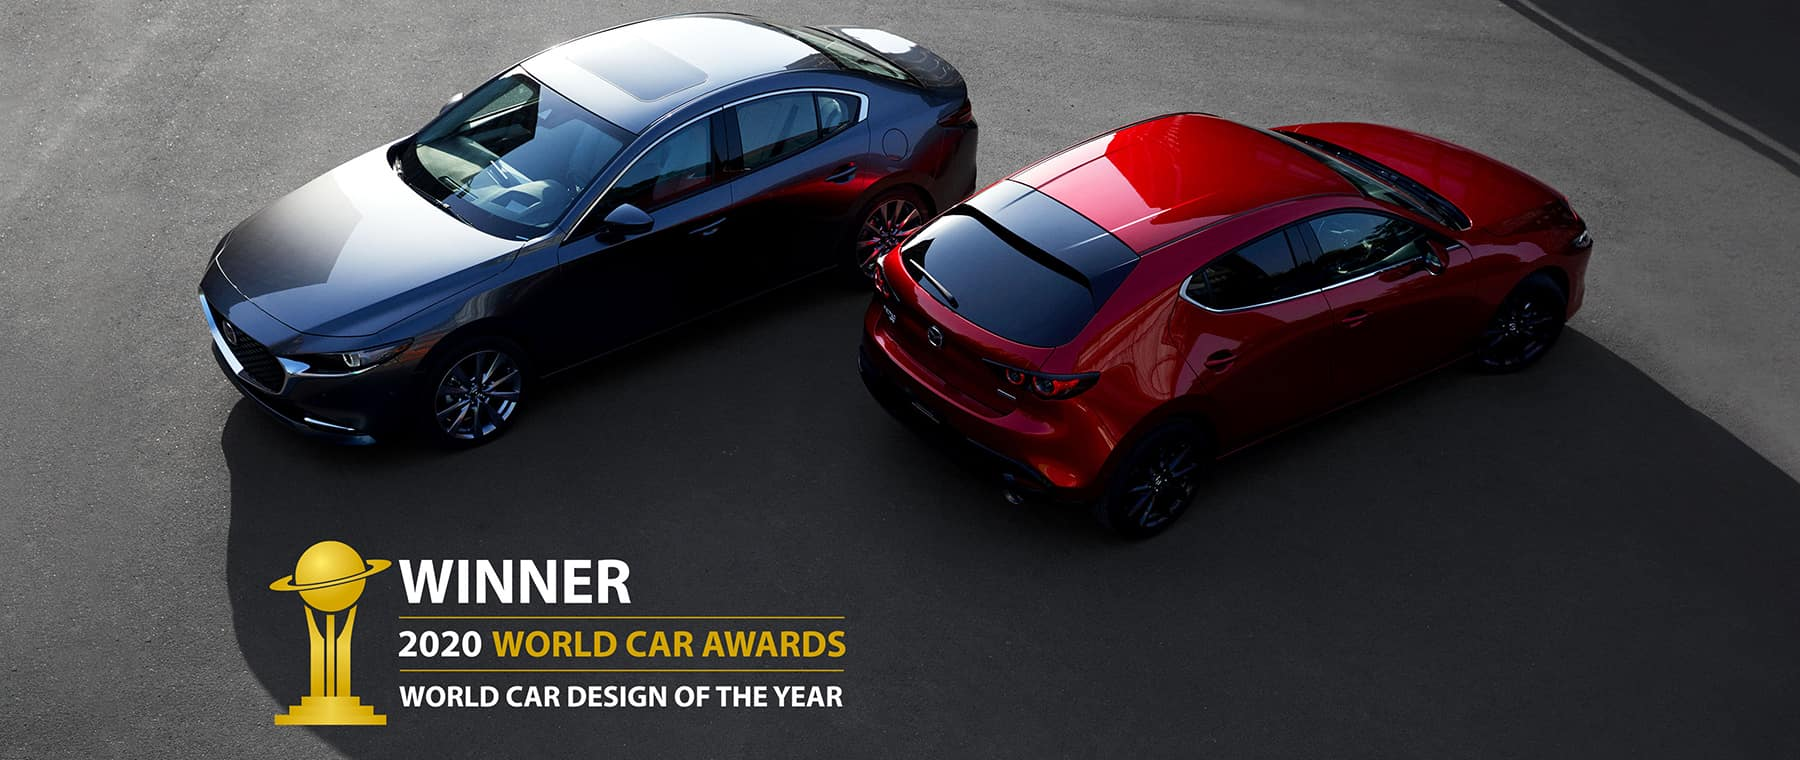 20-EAG-Mazda-Template_World-car-awards